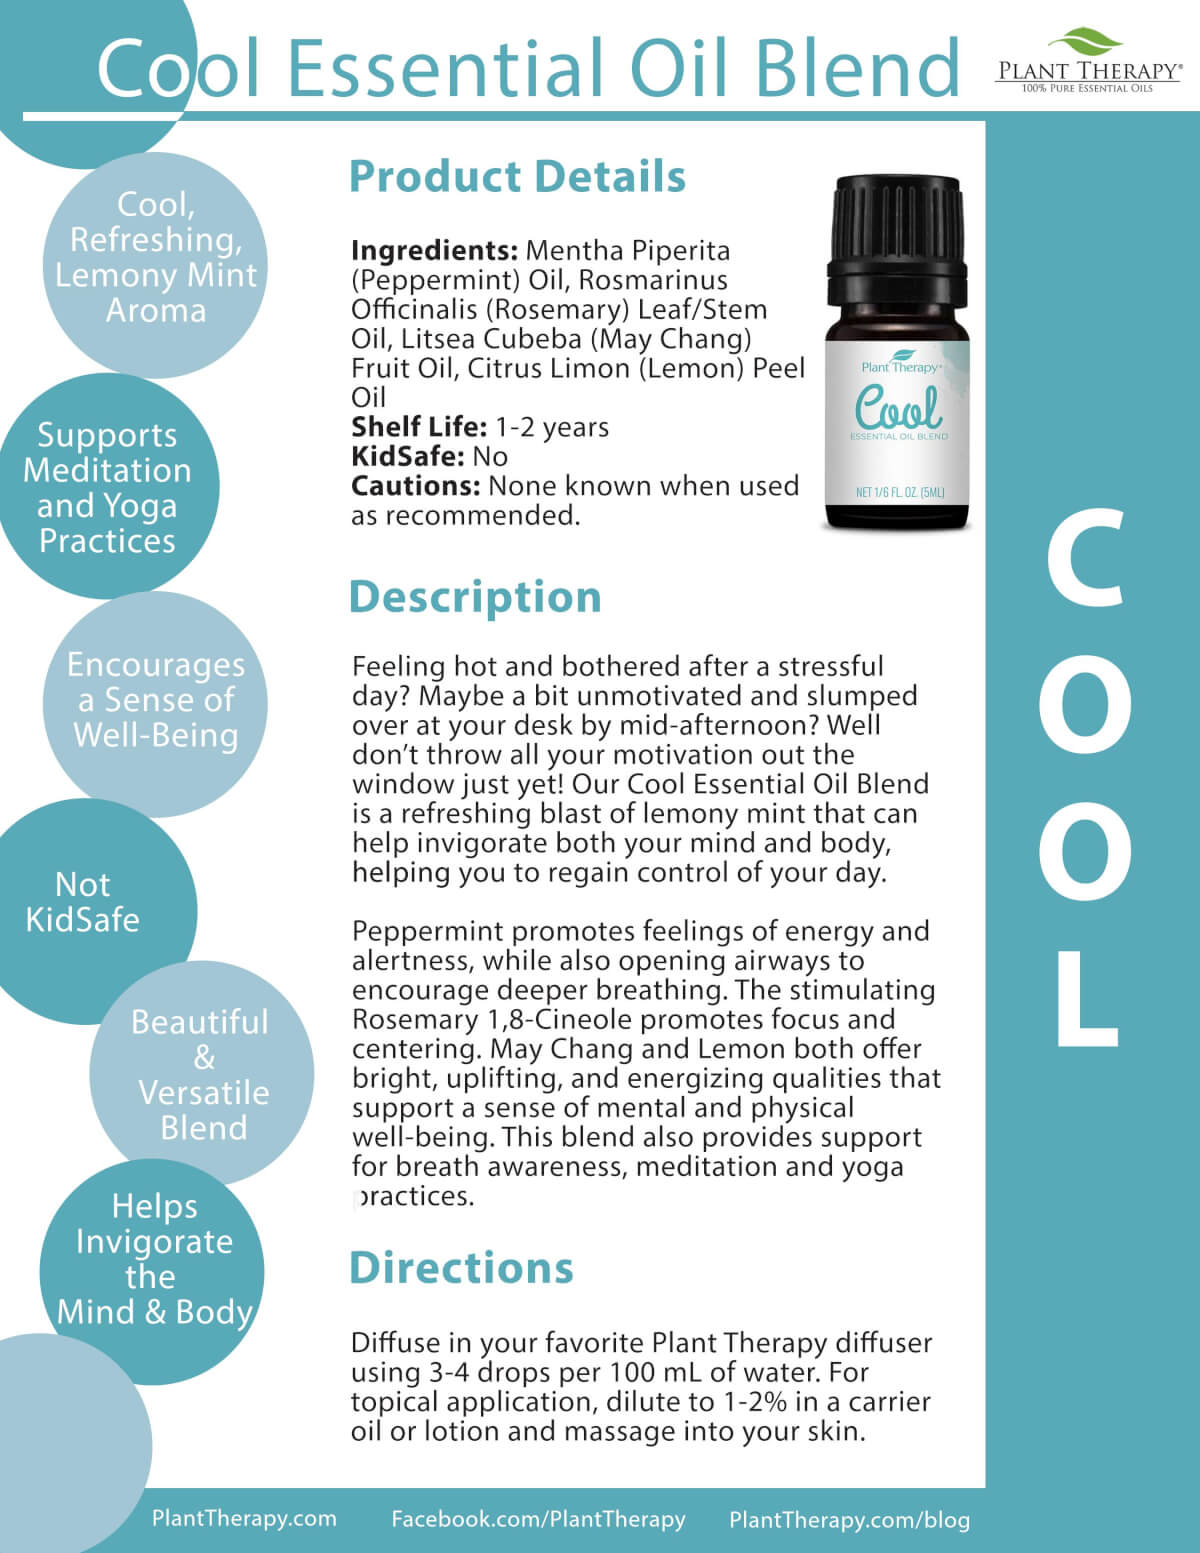 Cool Essential Oil Blend